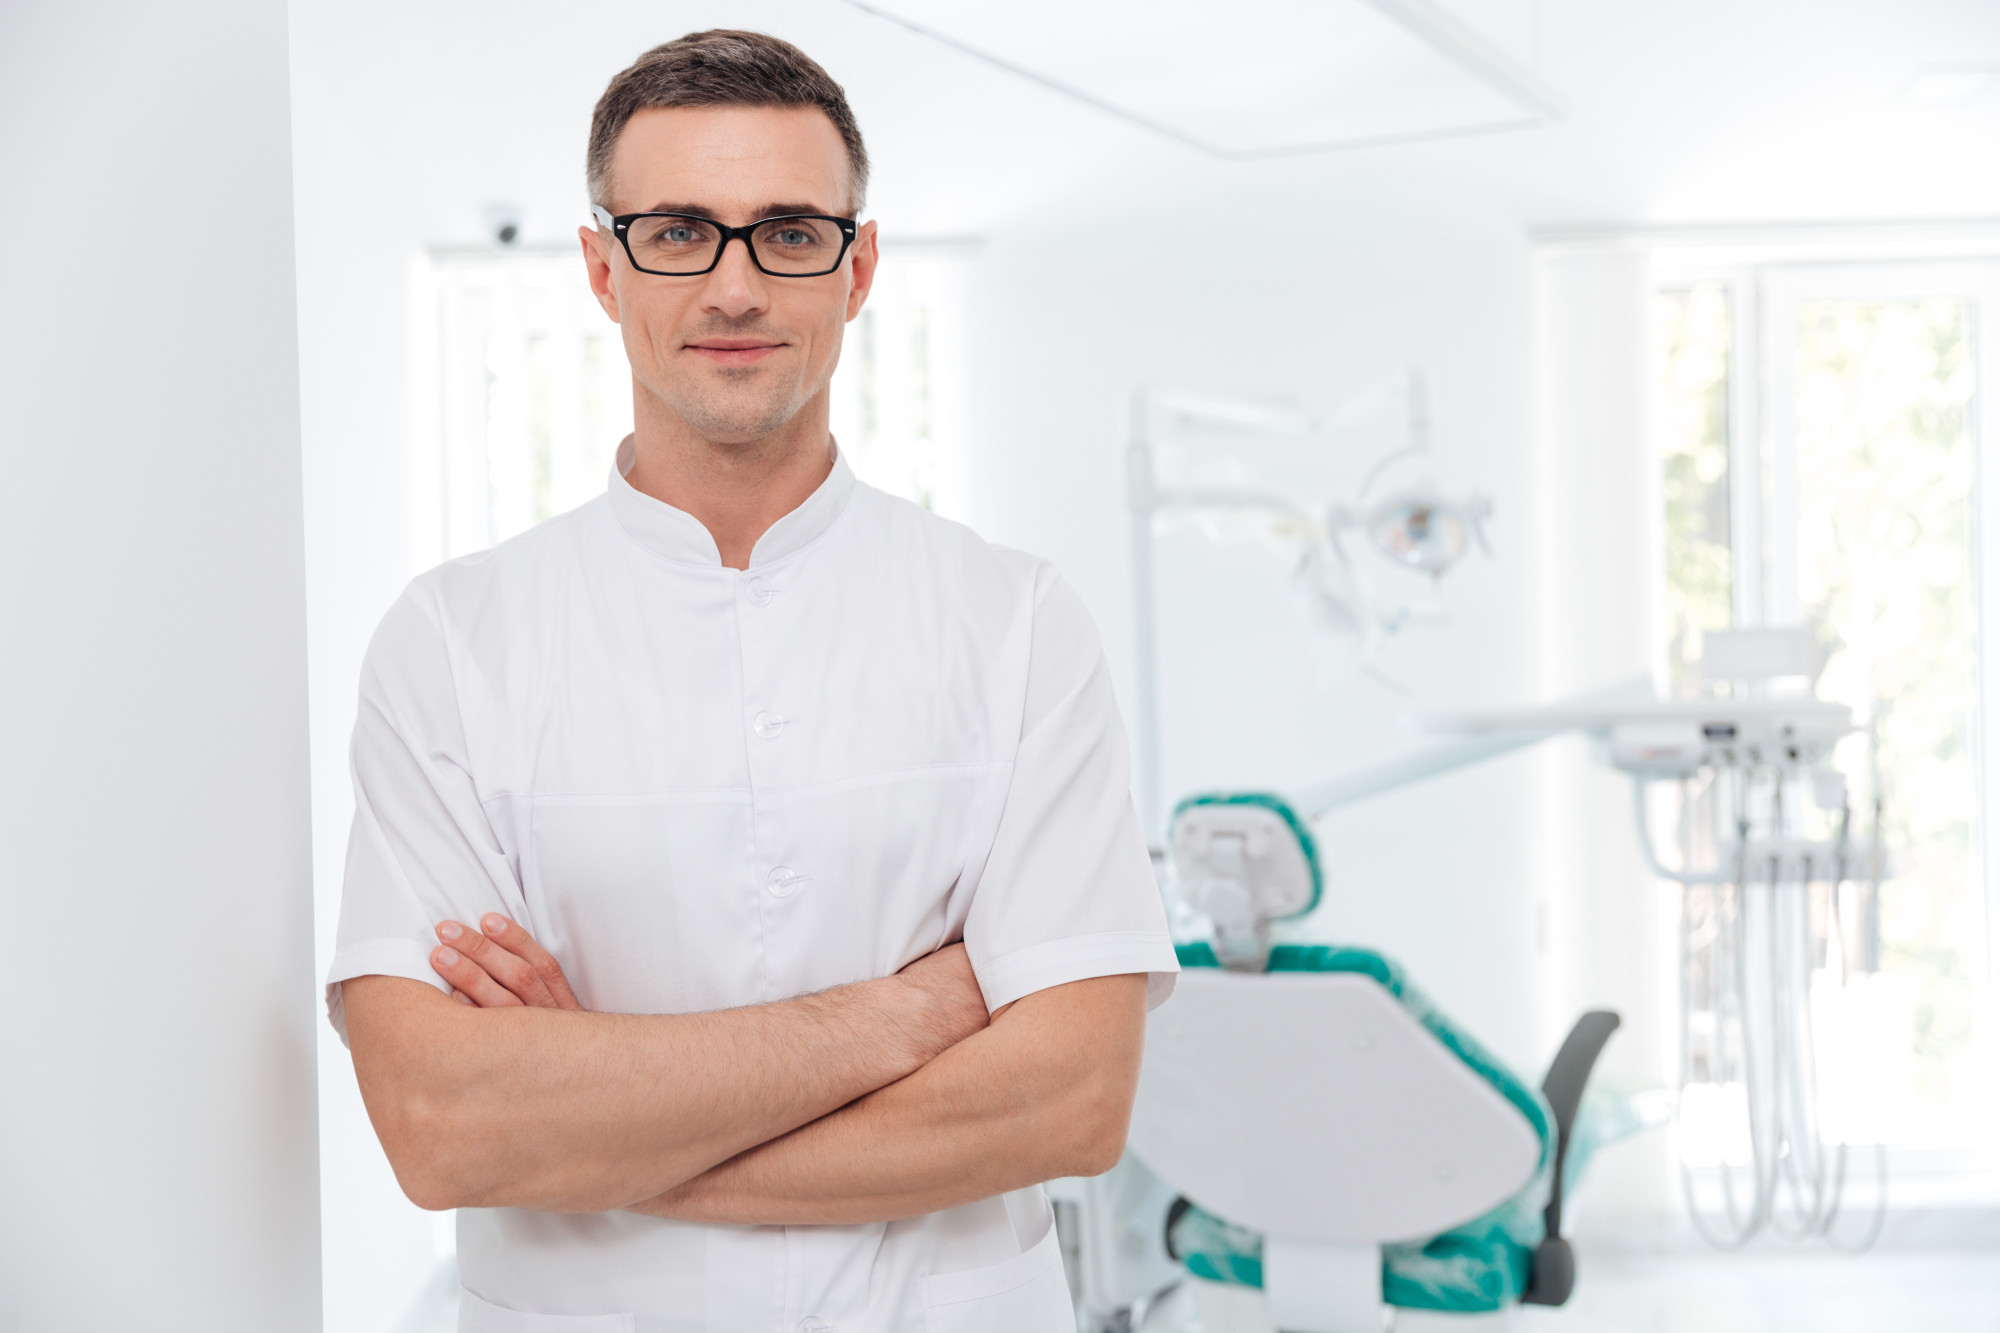 Male dentist standing with his hands crossed and looking at camera